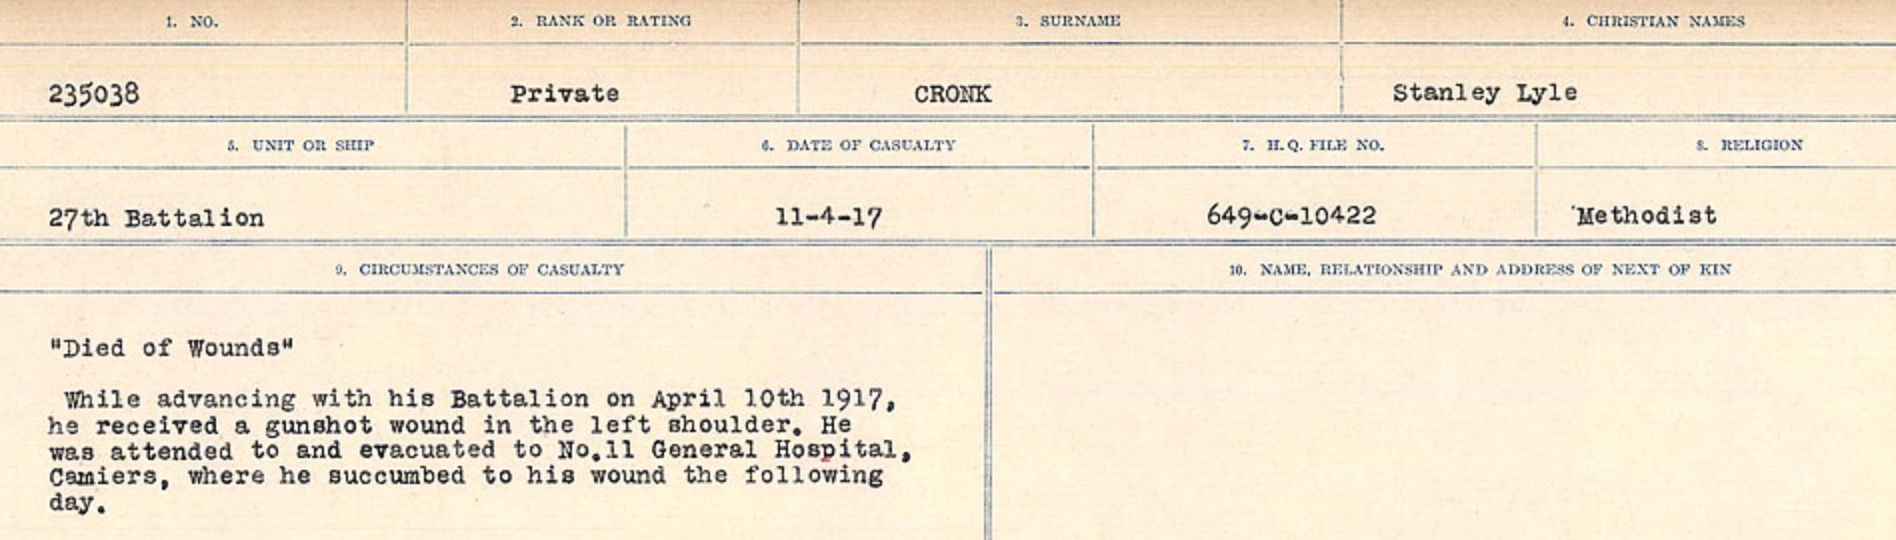 Circumstances of death registers– Source: Library and Archives Canada. CIRCUMSTANCES OF DEATH REGISTERS, FIRST WORLD WAR Surnames: CRABB TO CROSSLAND Microform Sequence 24; Volume Number 31829_B016733. Reference RG150, 1992-93/314, 168. Page 667 of 788.